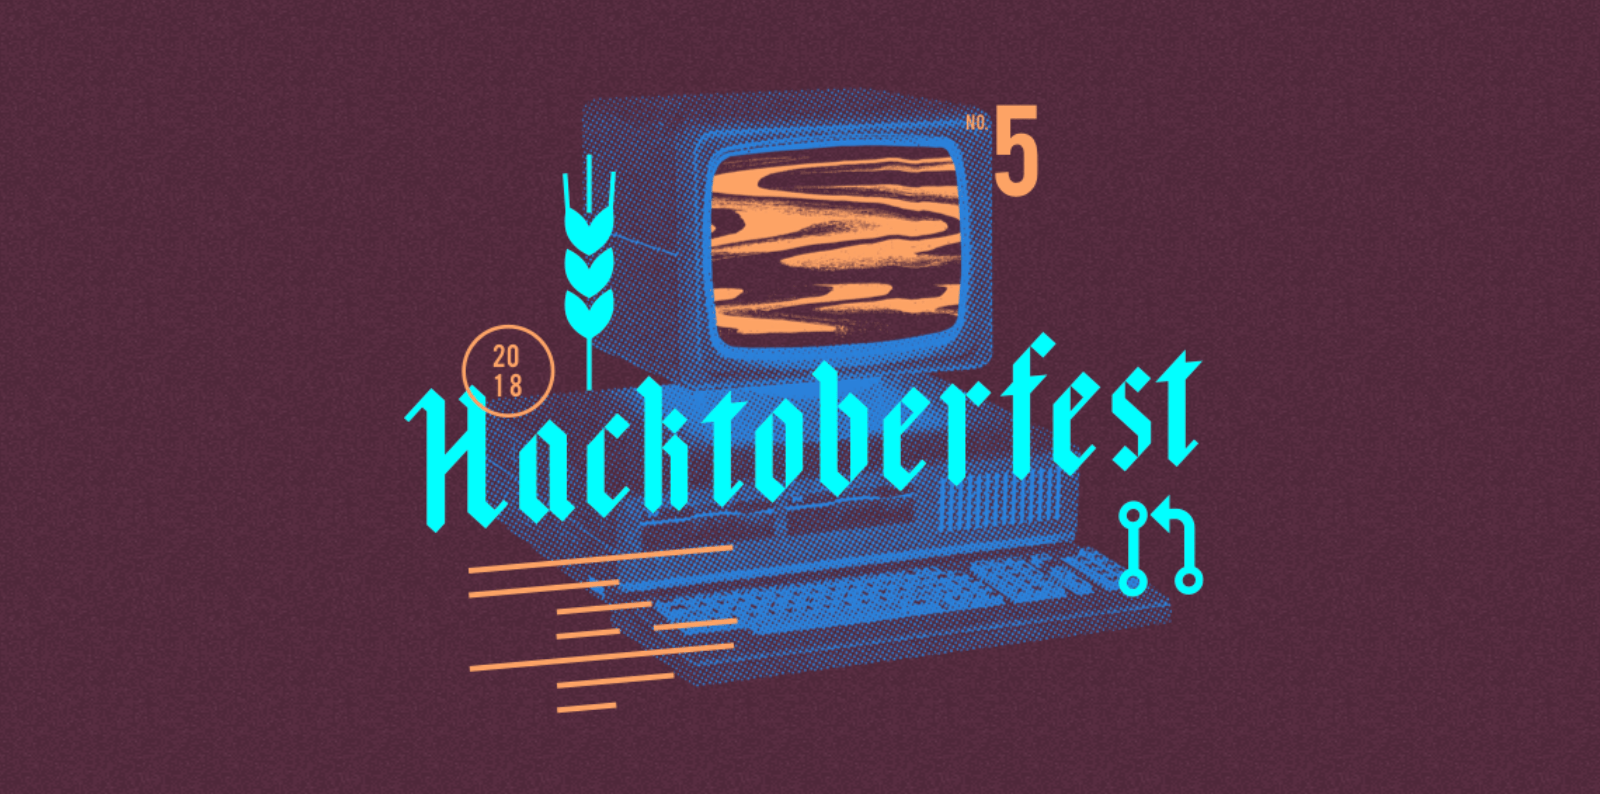 5th Annual Hacktoberfest Kicks Off Today, Updated Rules